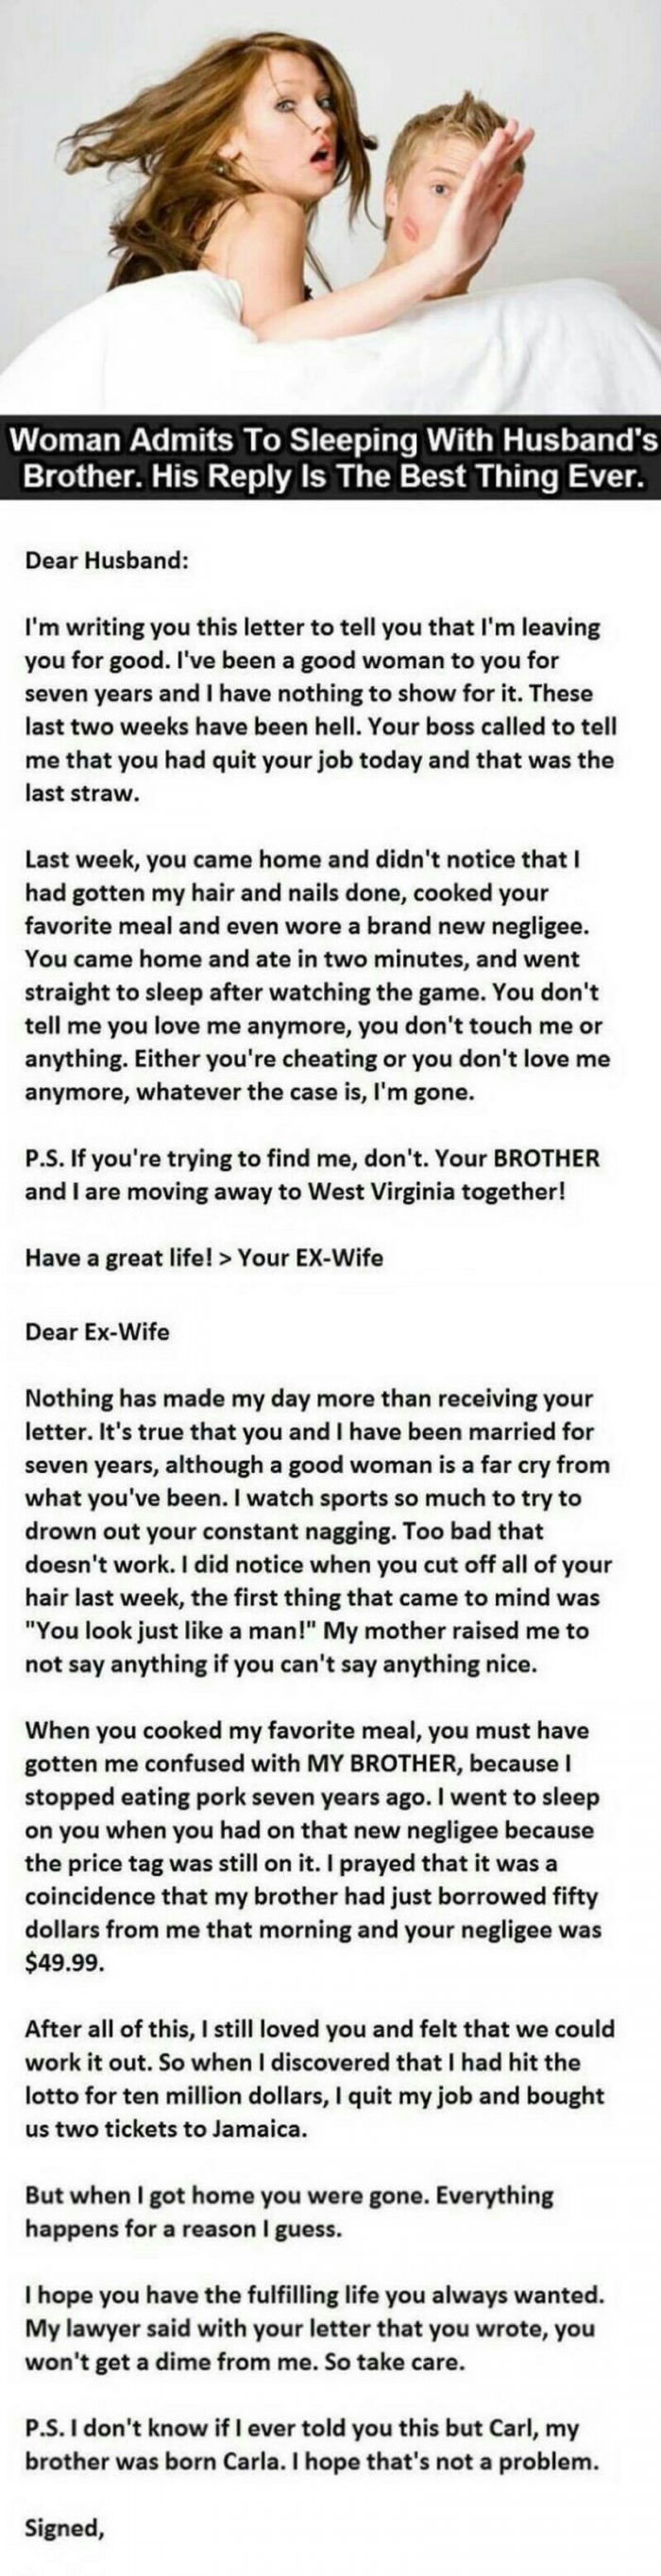 woman admits to sleeping with husband's brother but his reply is the best thing ever, karma